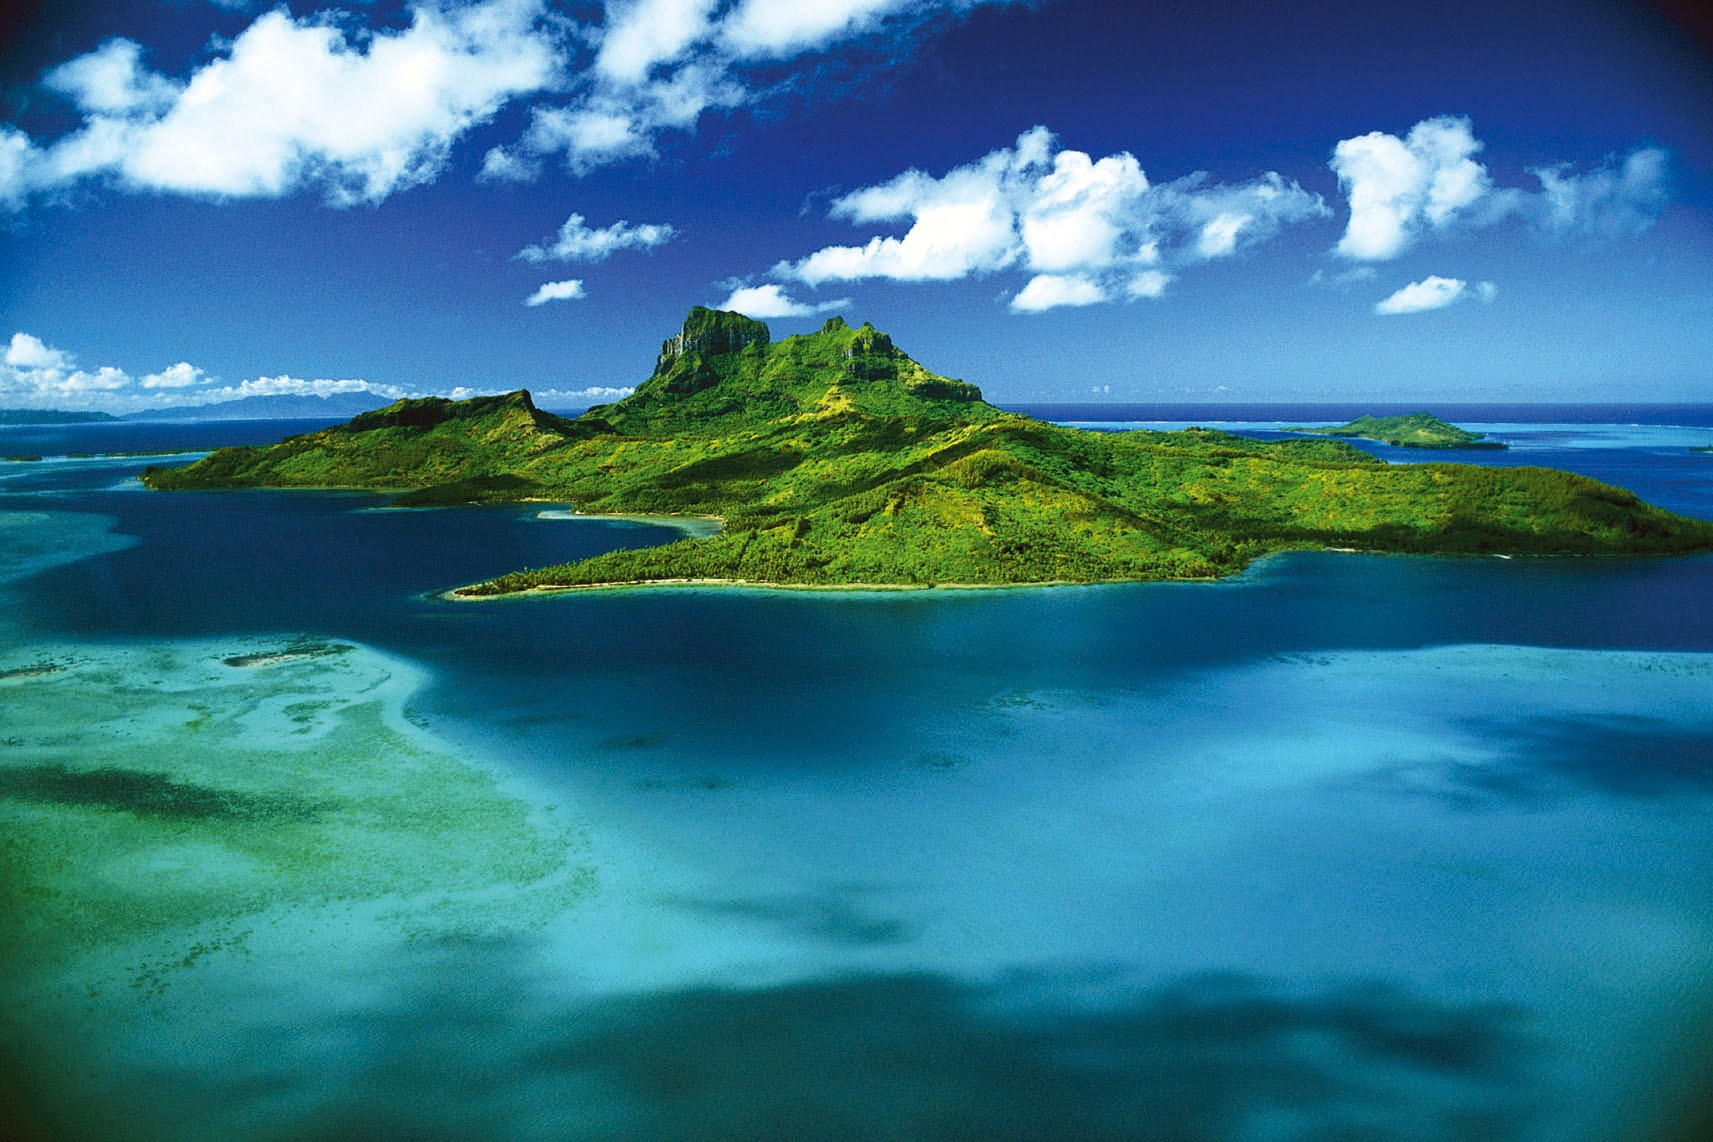 The Most Beautiful Island In the World